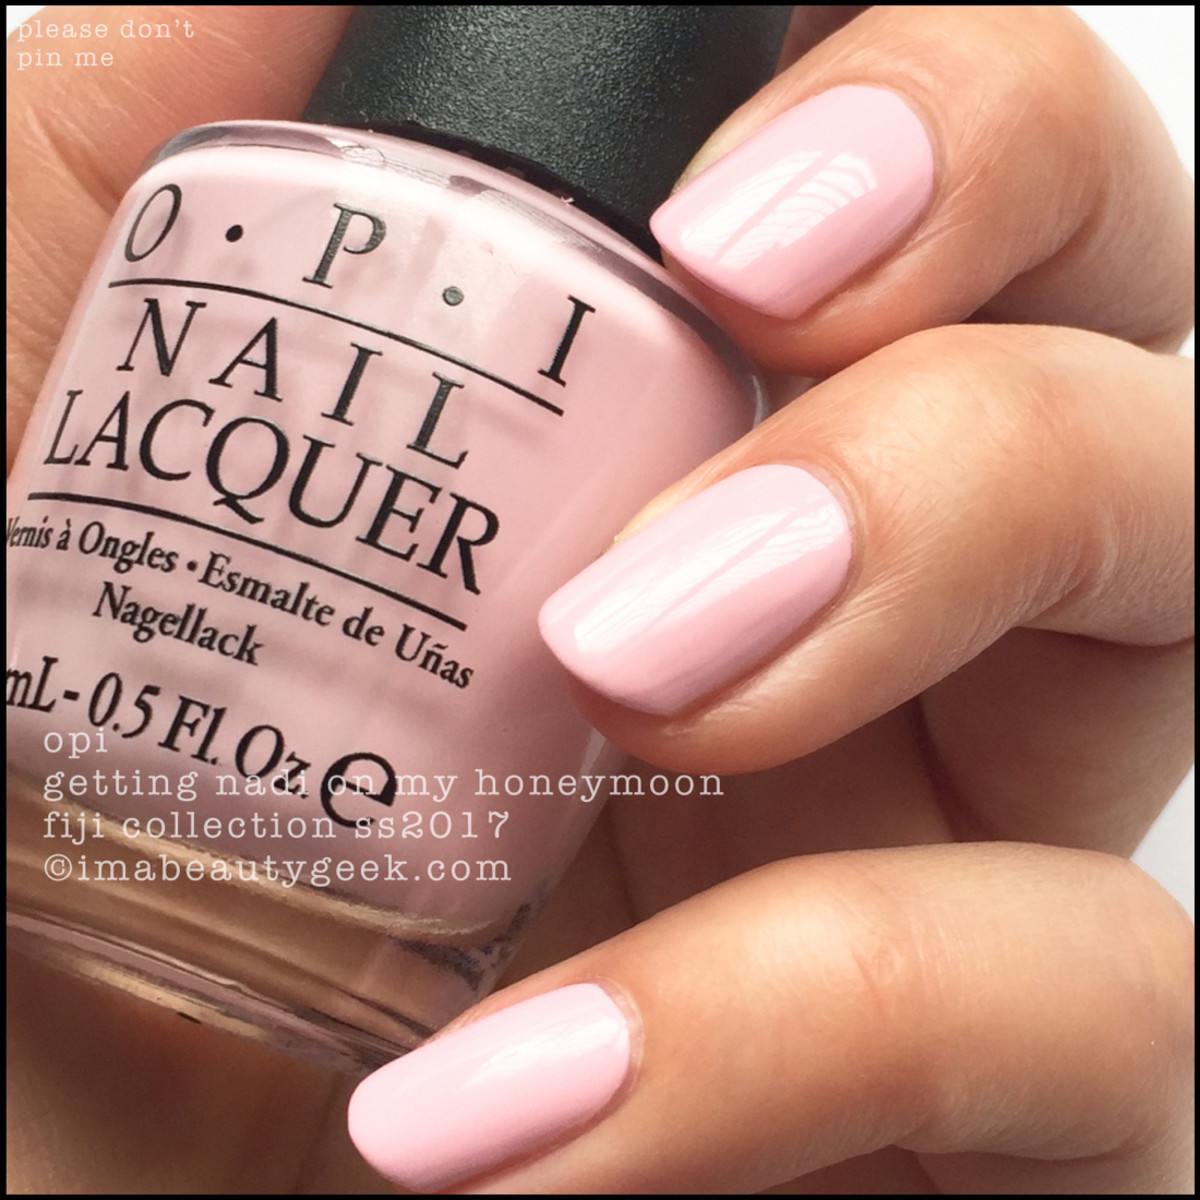 OPI Getting Nadi On My Honeymoon closer_OPI Fiji Collection Swatches Review 2017